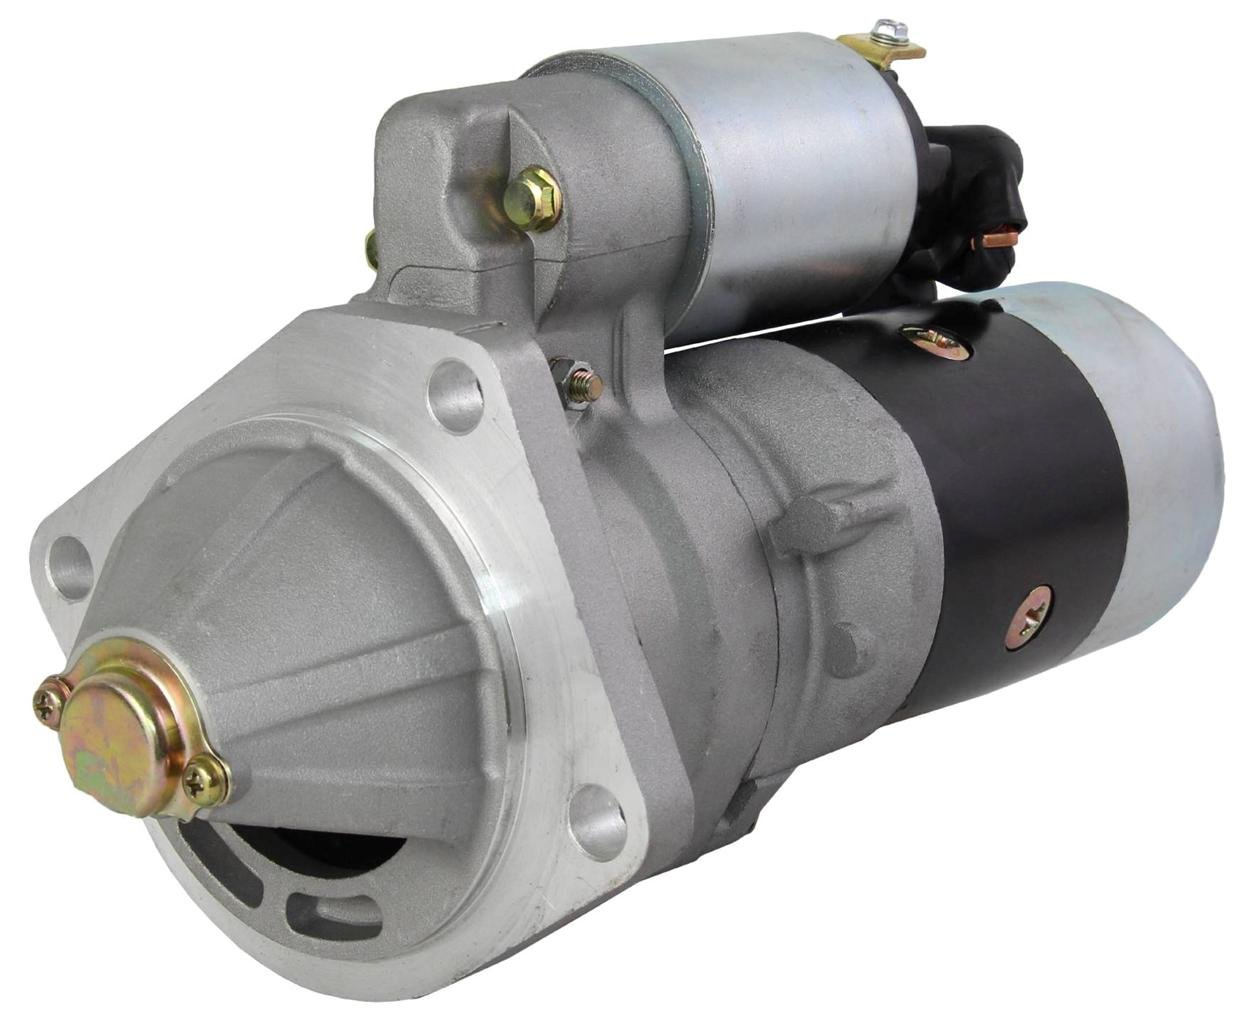 Amazon com: NEW 24V GEAR REDUCTION STARTER MOTOR FITS NISSAN